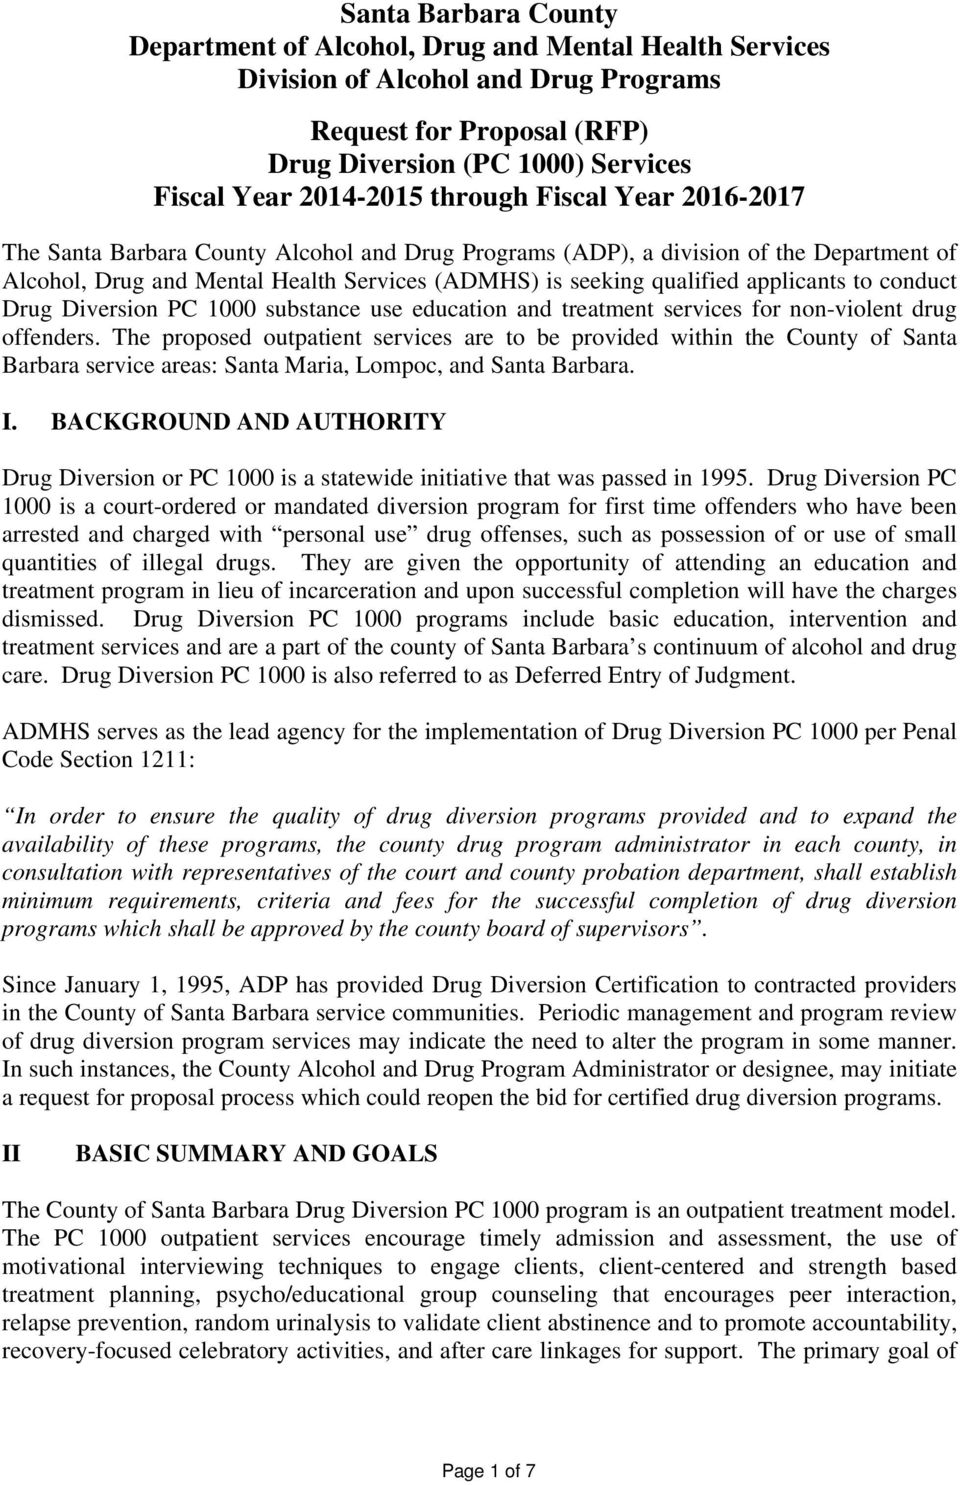 applicants to conduct Drug Diversion PC 1000 substance use education and treatment services for non-violent drug offenders.